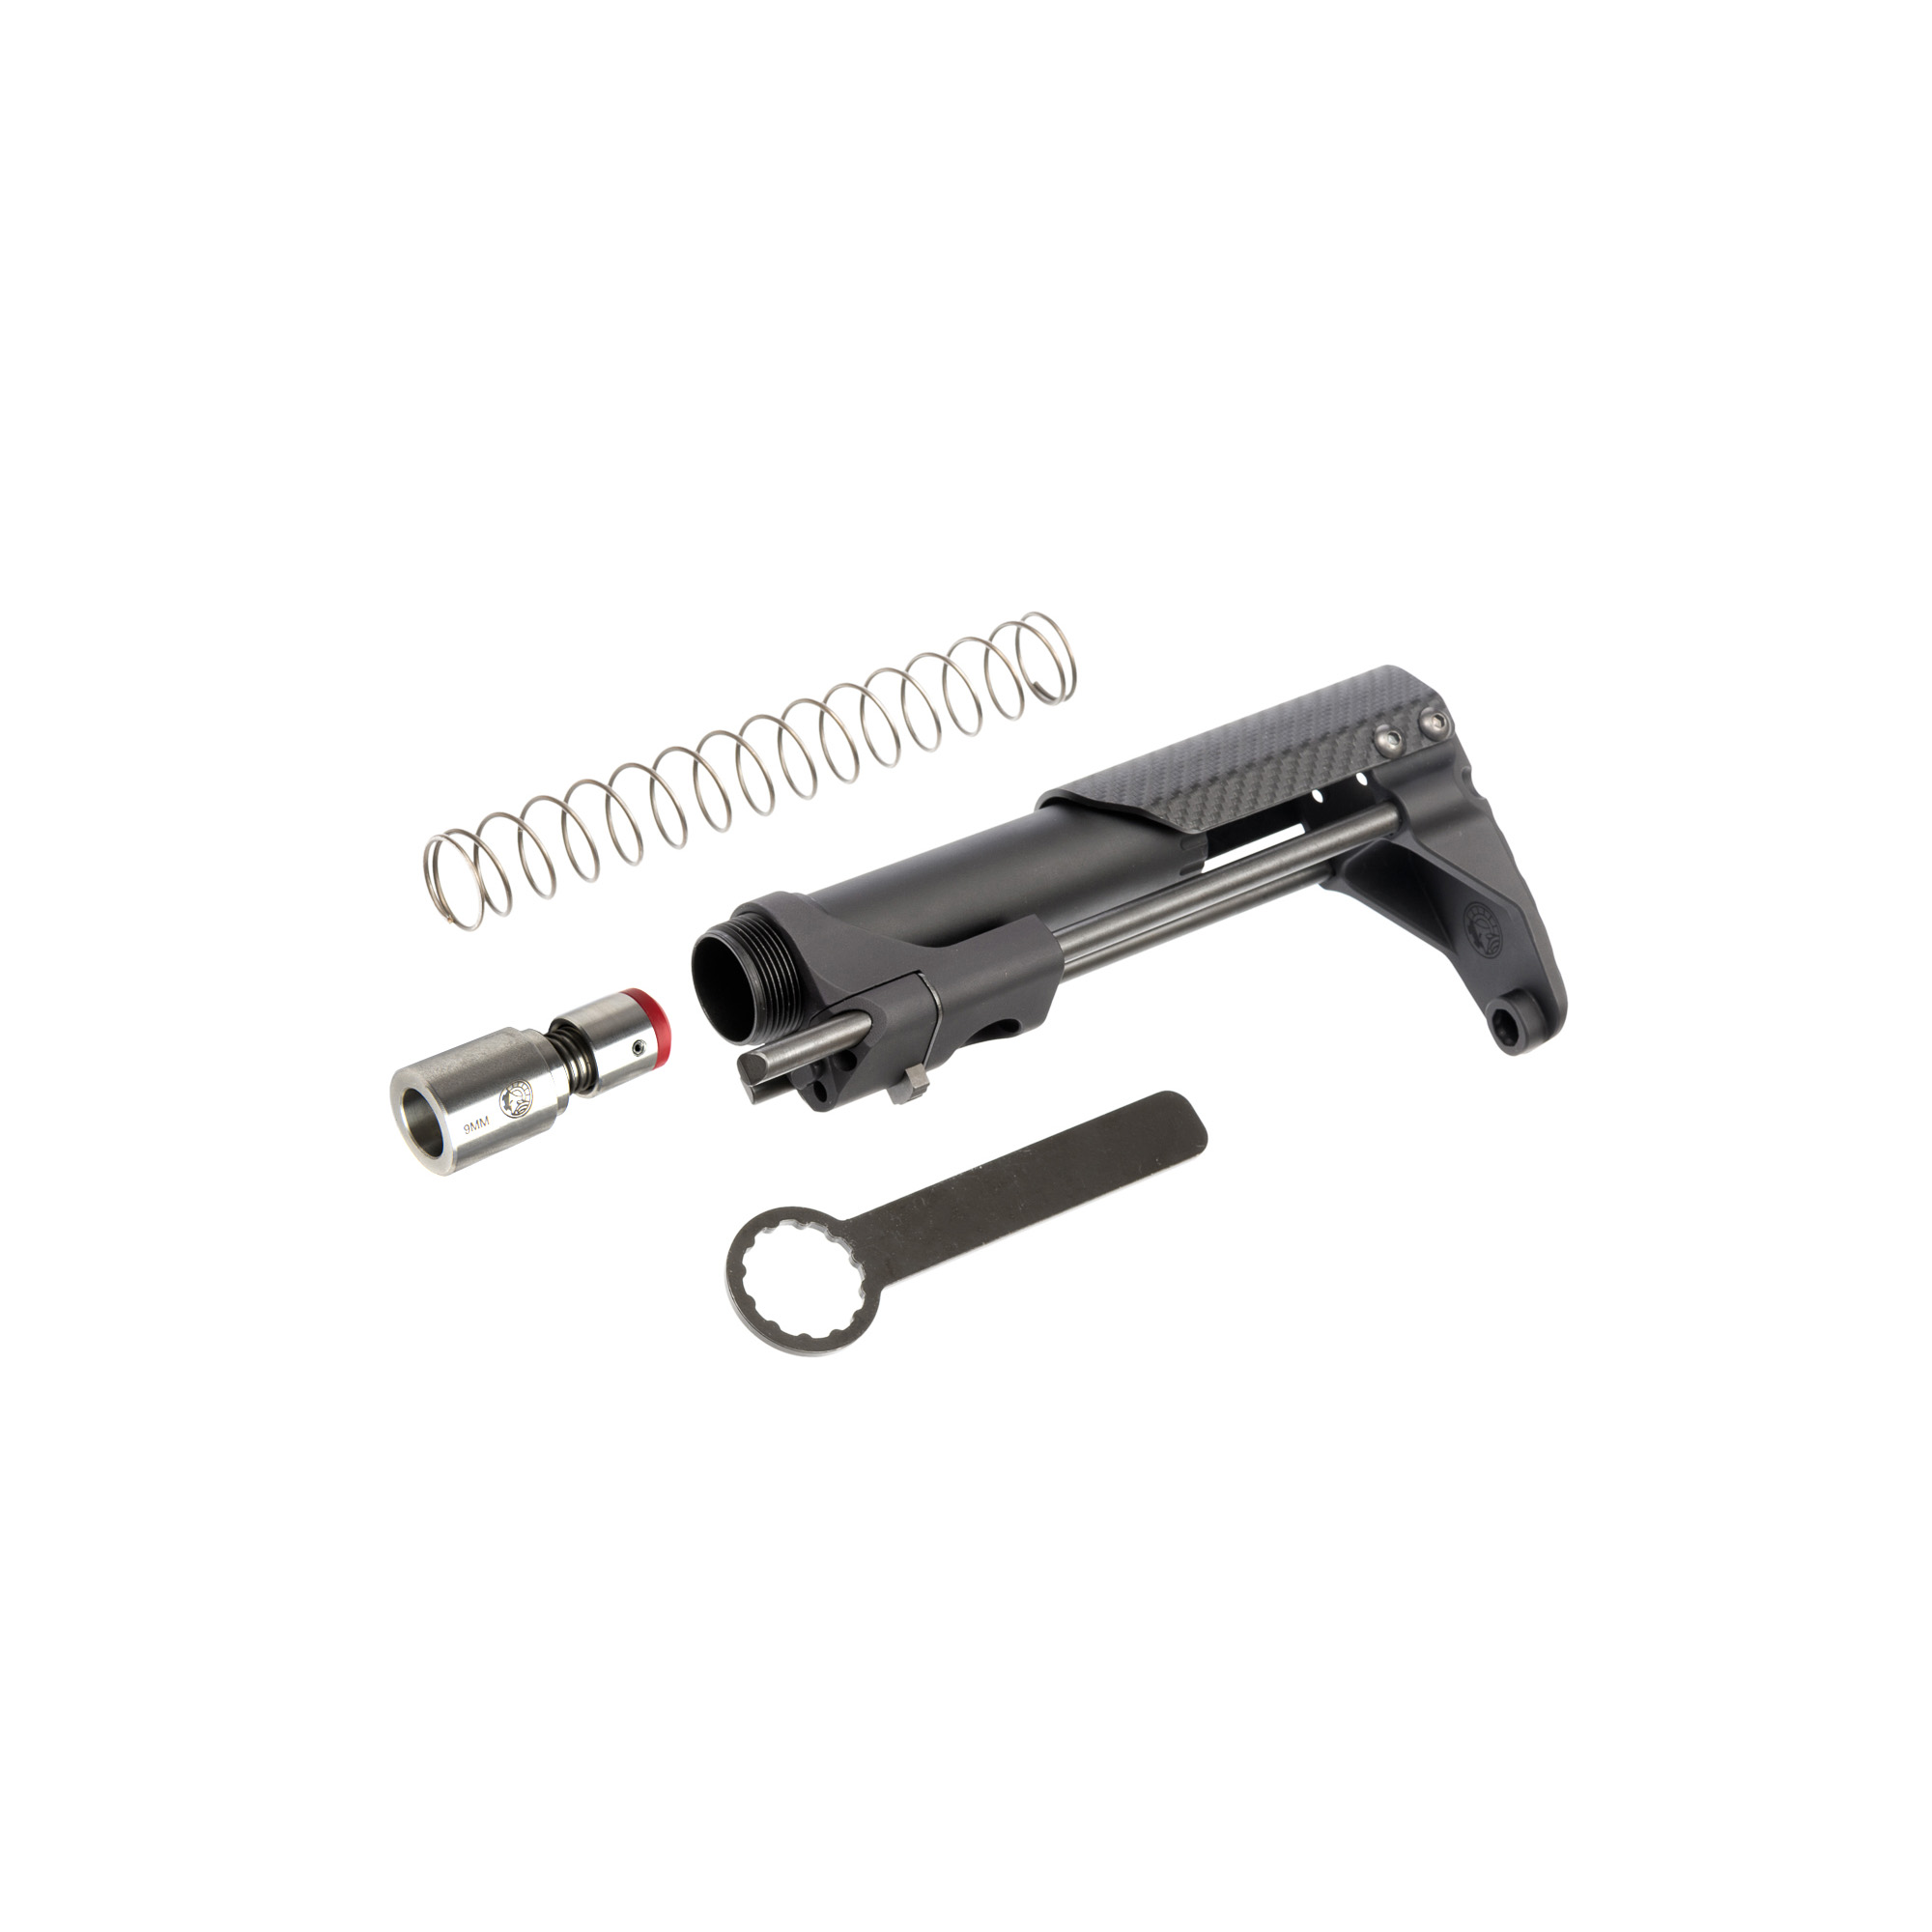 Bad 9mm Vert Pdw Stock System Blk